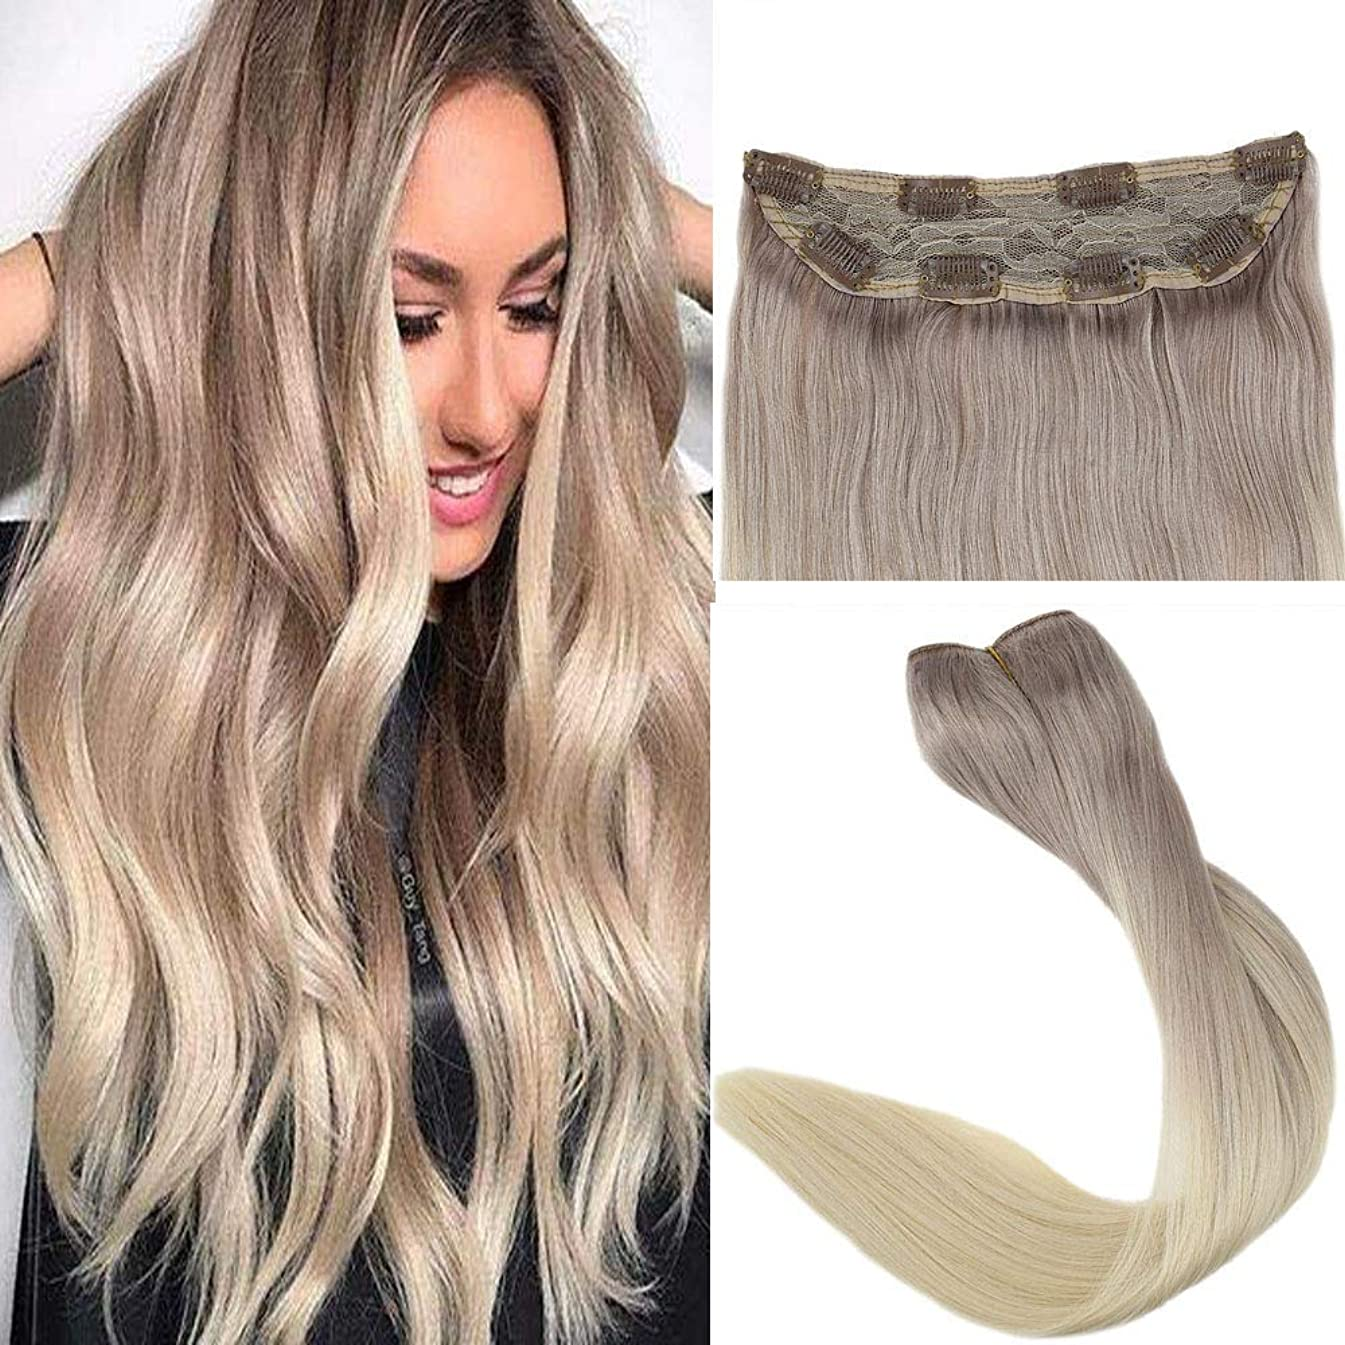 Easyouth 3/4 Head Clip Ins Hair 12 Inch 70g Color Ash Blonde Fading To White Blonde Balayage Clip In Hair Extensions Lace Area 10x3cm Clip in Hair Pieces